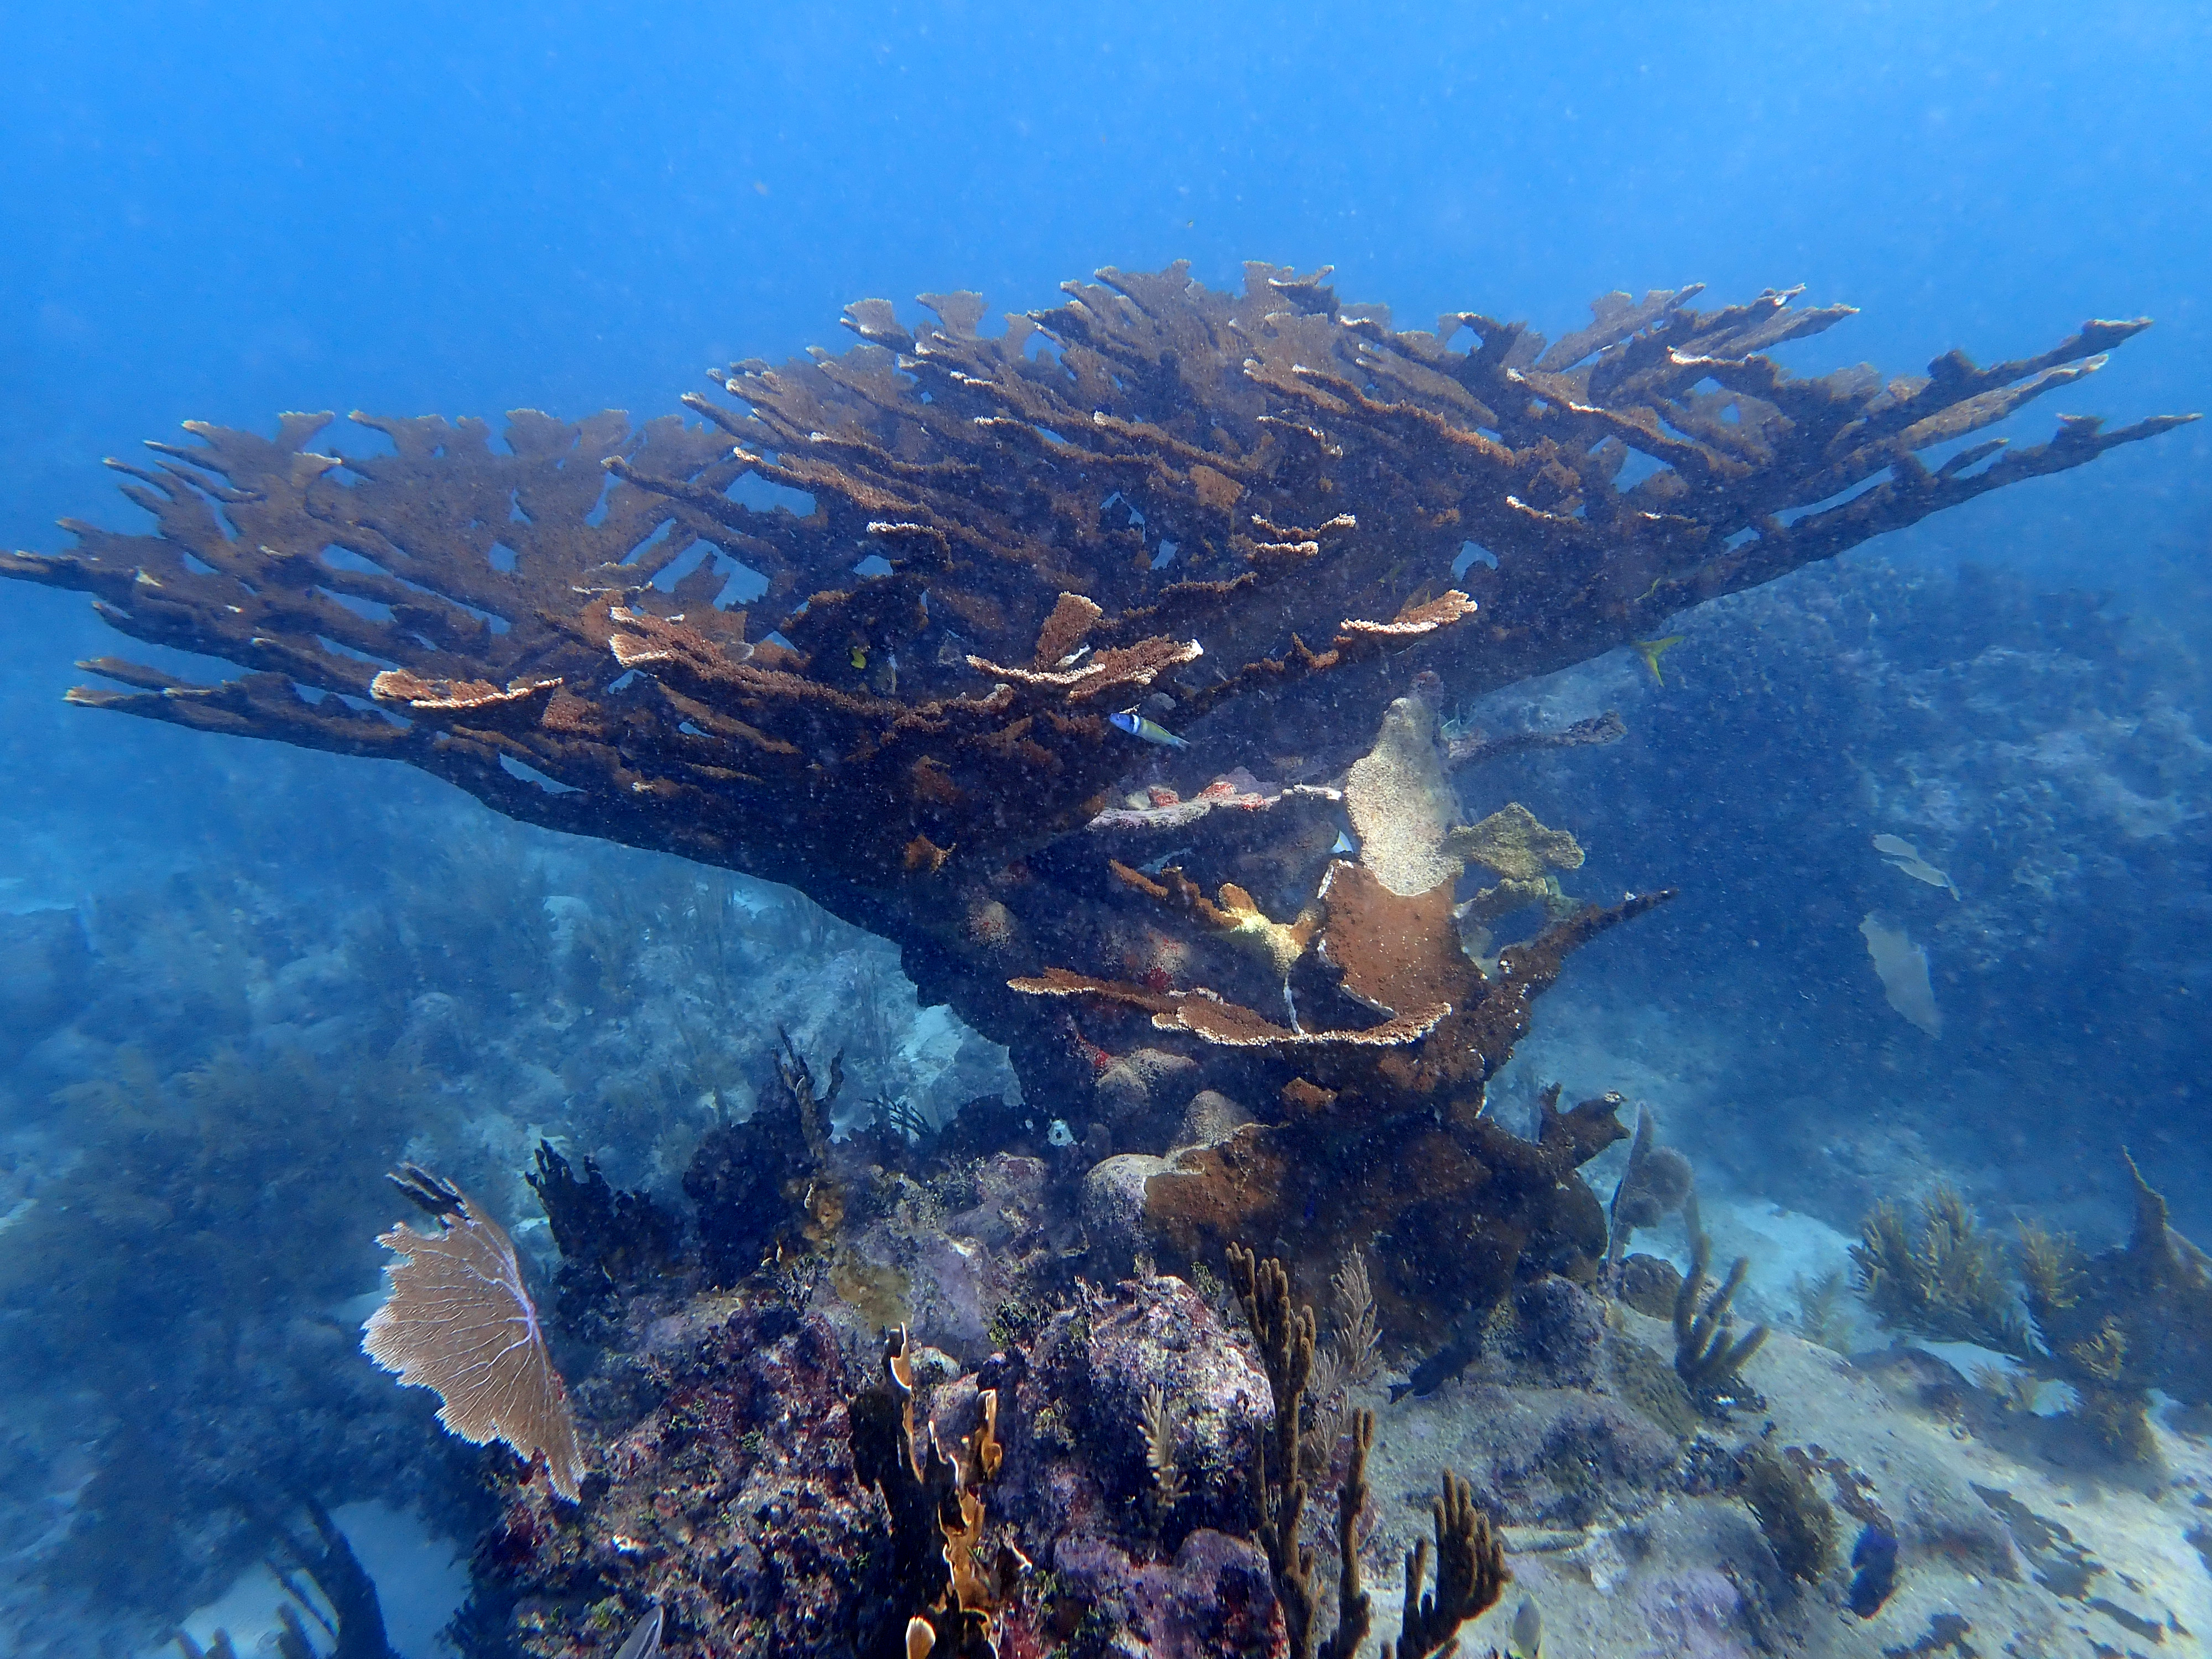 Visit the underwater world: scuba diving certification / PADI Open Water